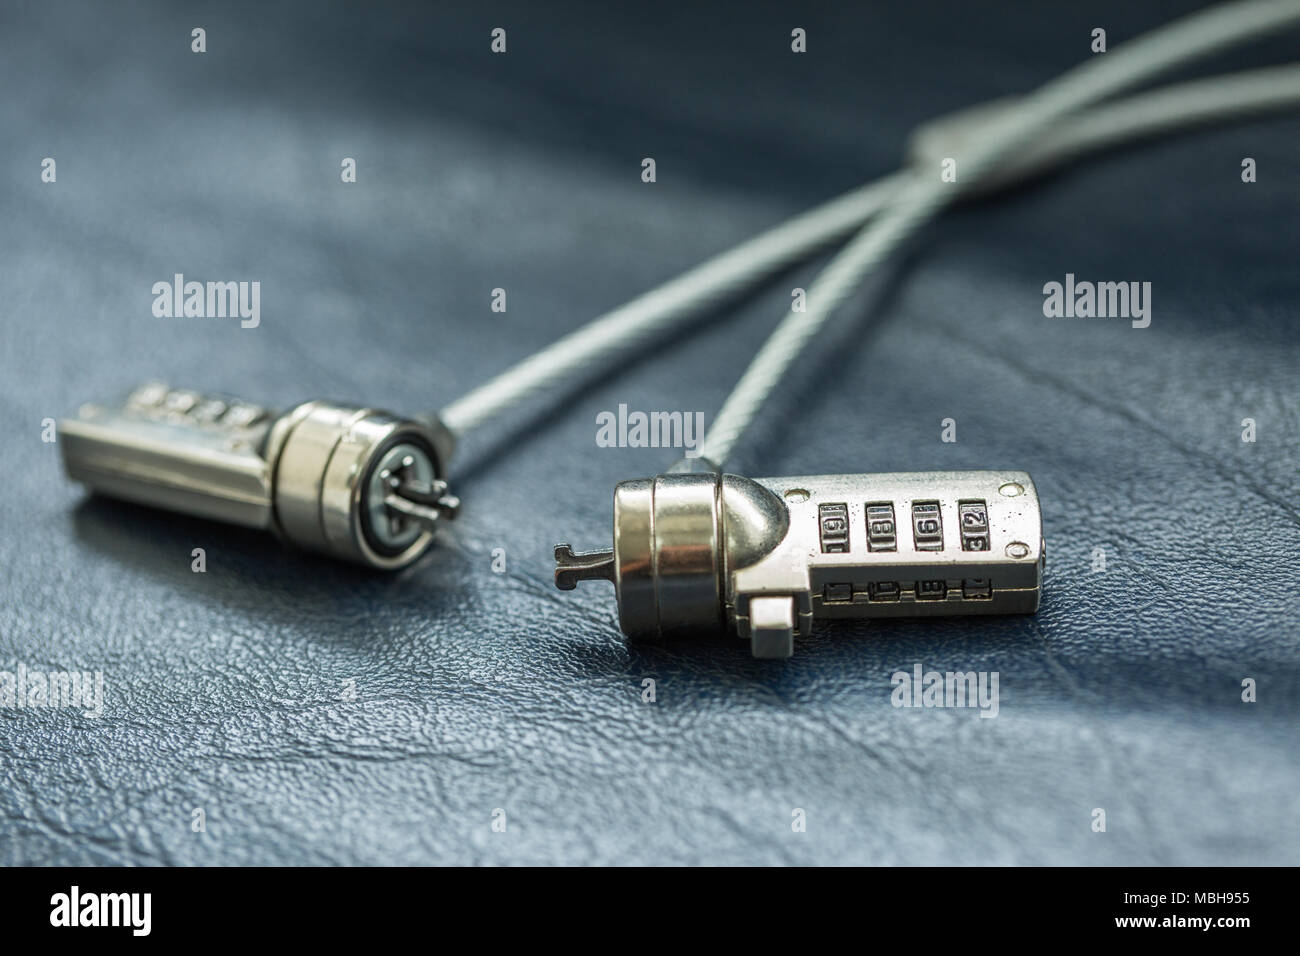 Two computer cable lock on black leather, Security concept shot for ...